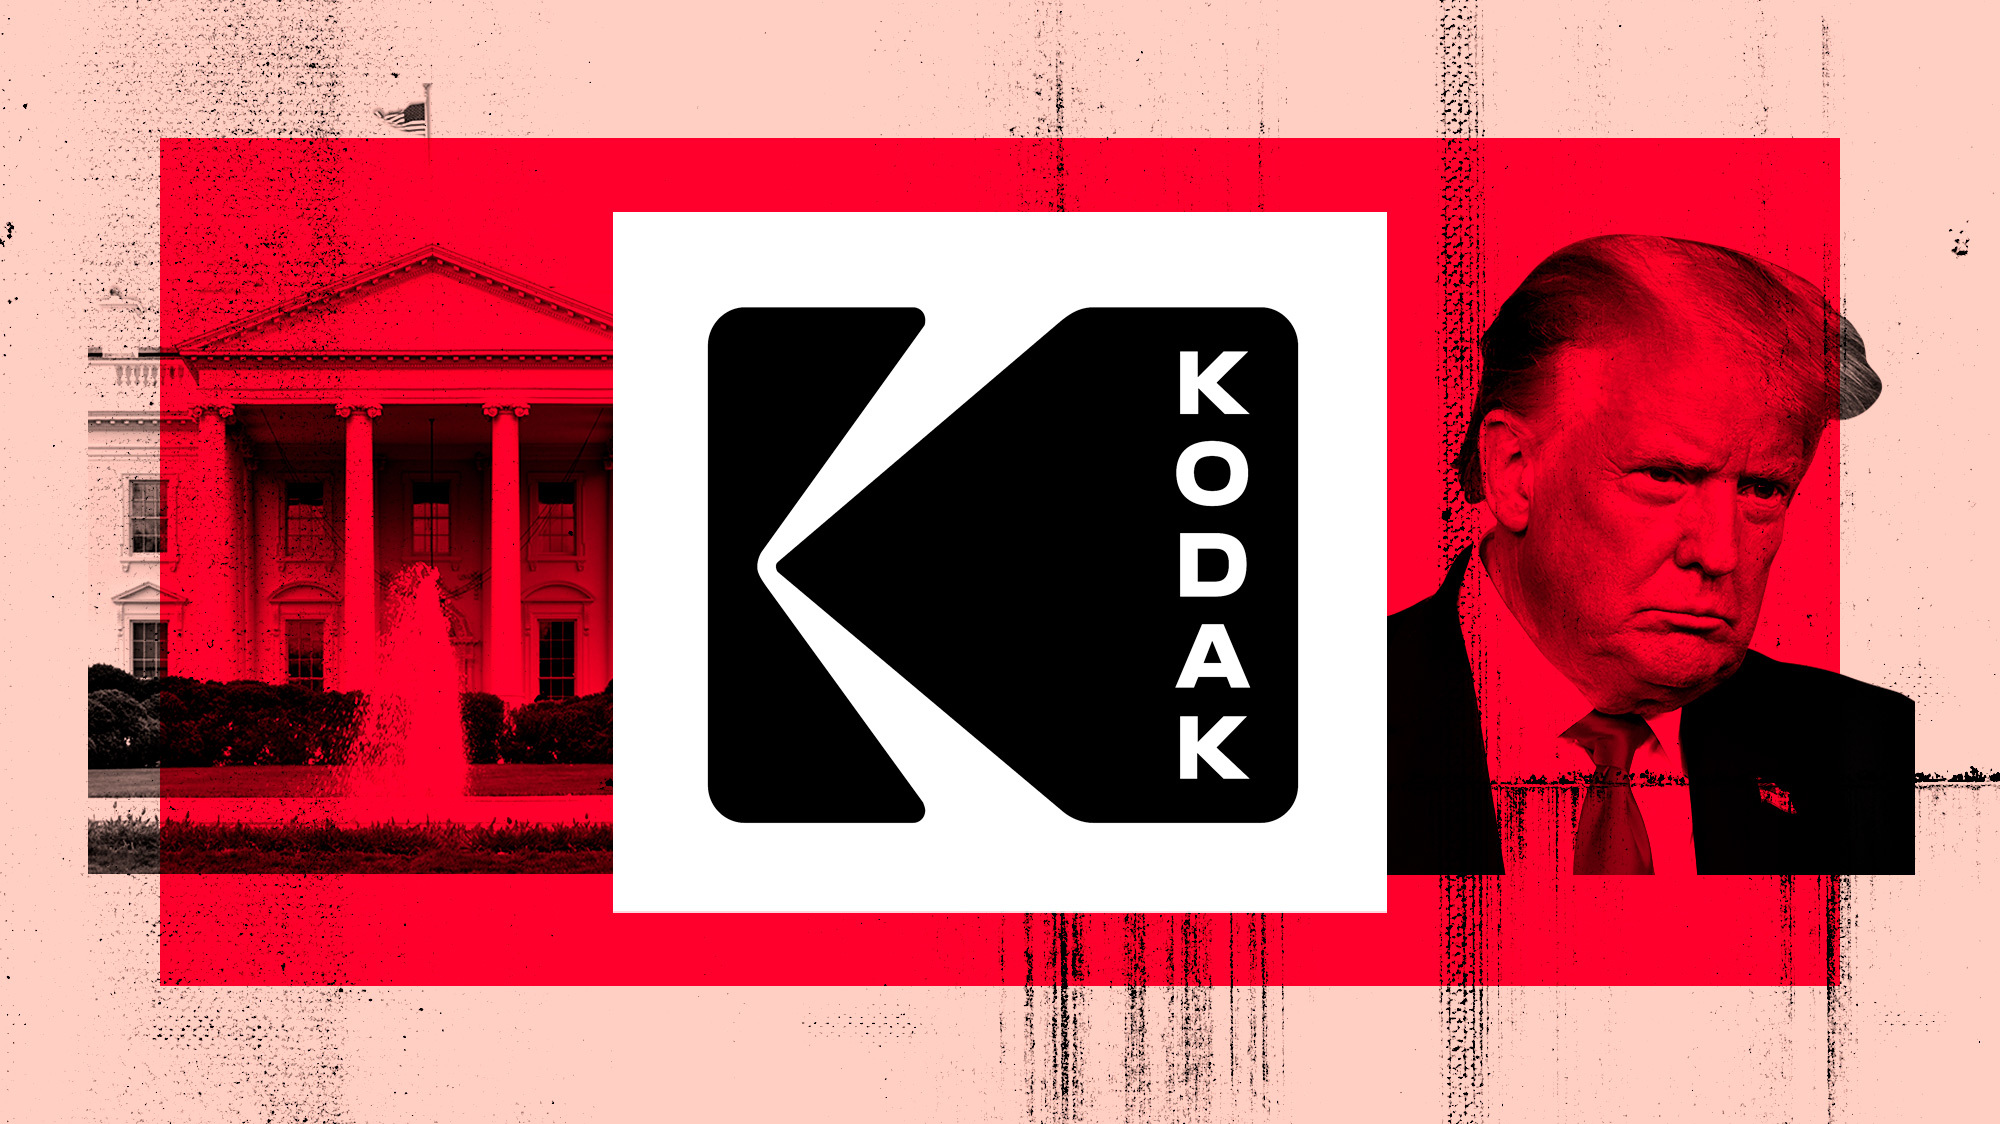 The White House–Kodak Controversy Has a New Angle: A Billionaire's Huge Stock Gift to a Synagogue